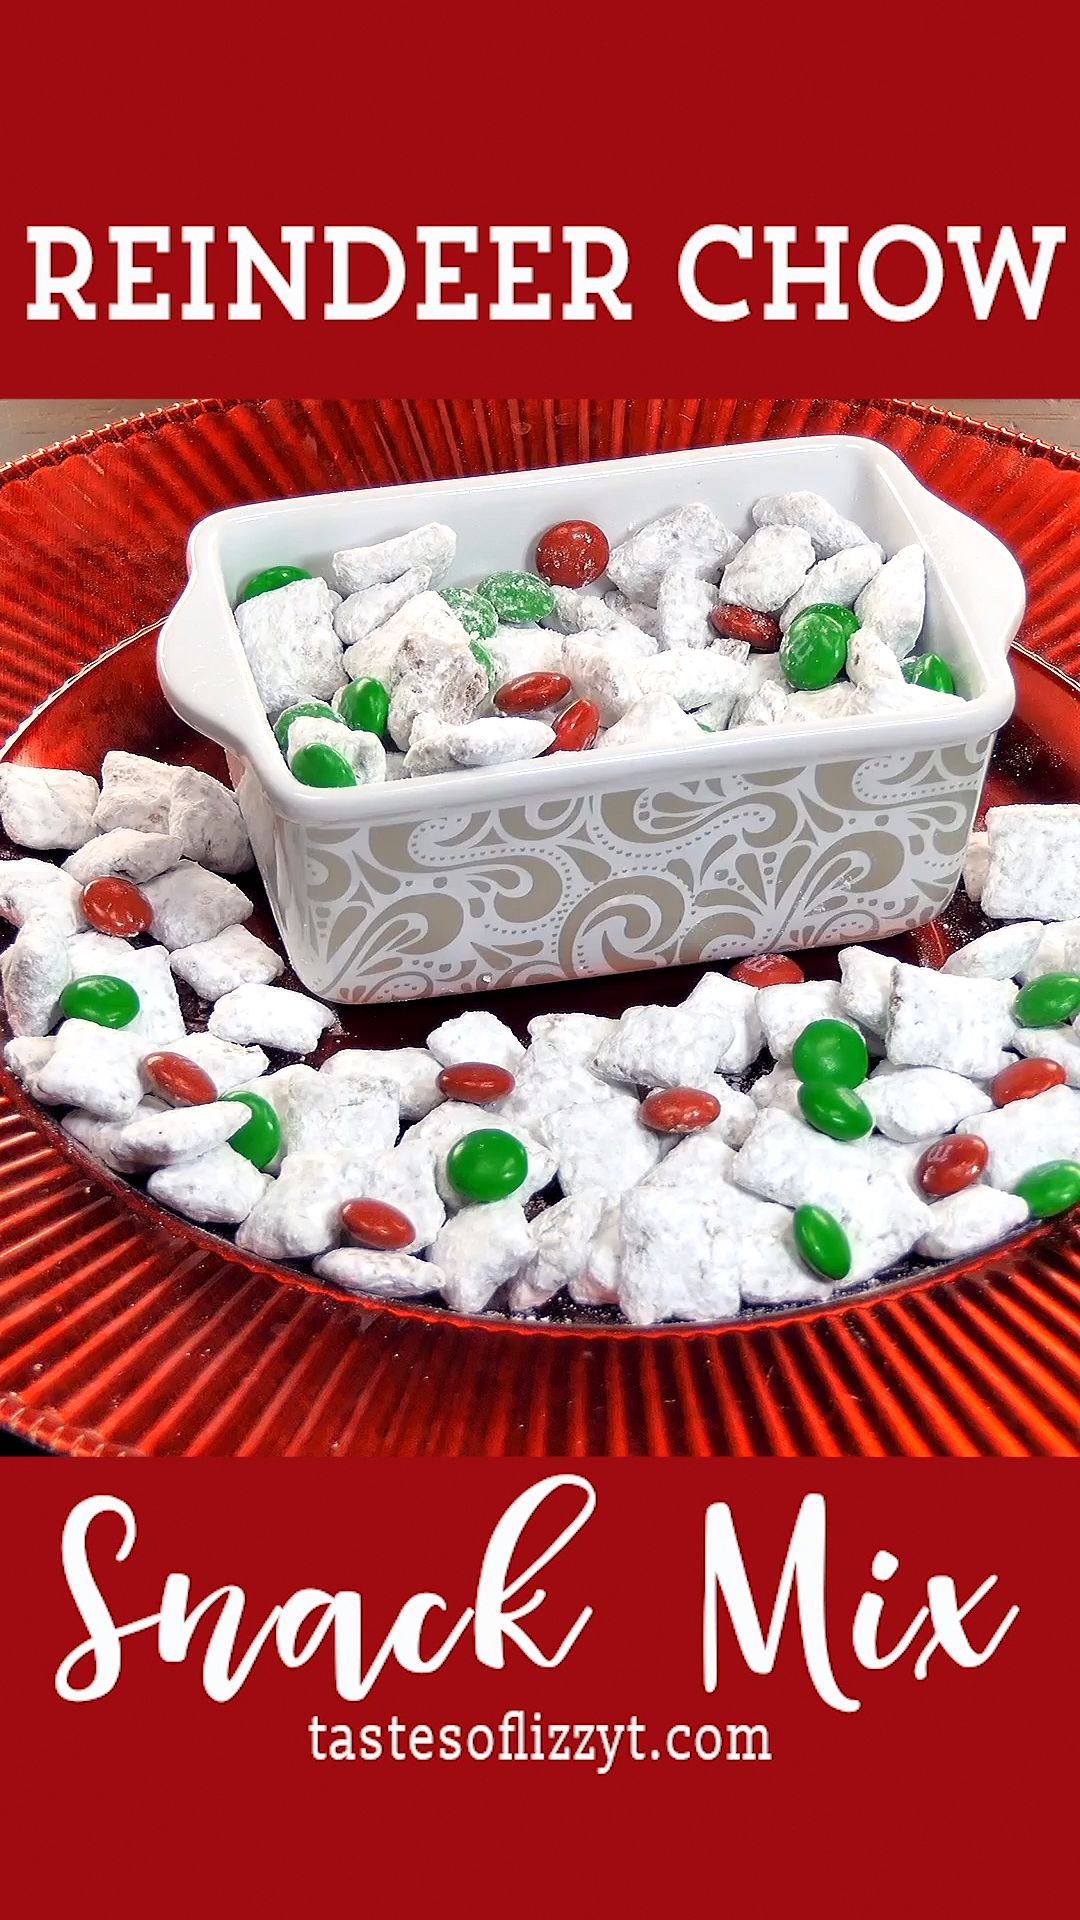 Make sure Santa stops at your house by attracting reindeer! This Reindeer Chow recipe turns the classic muddy buddies puppy chow into a Christmas treat that the kids will love. #reindeer #christmas #santa #chocolate #appetizersforchristmasparty